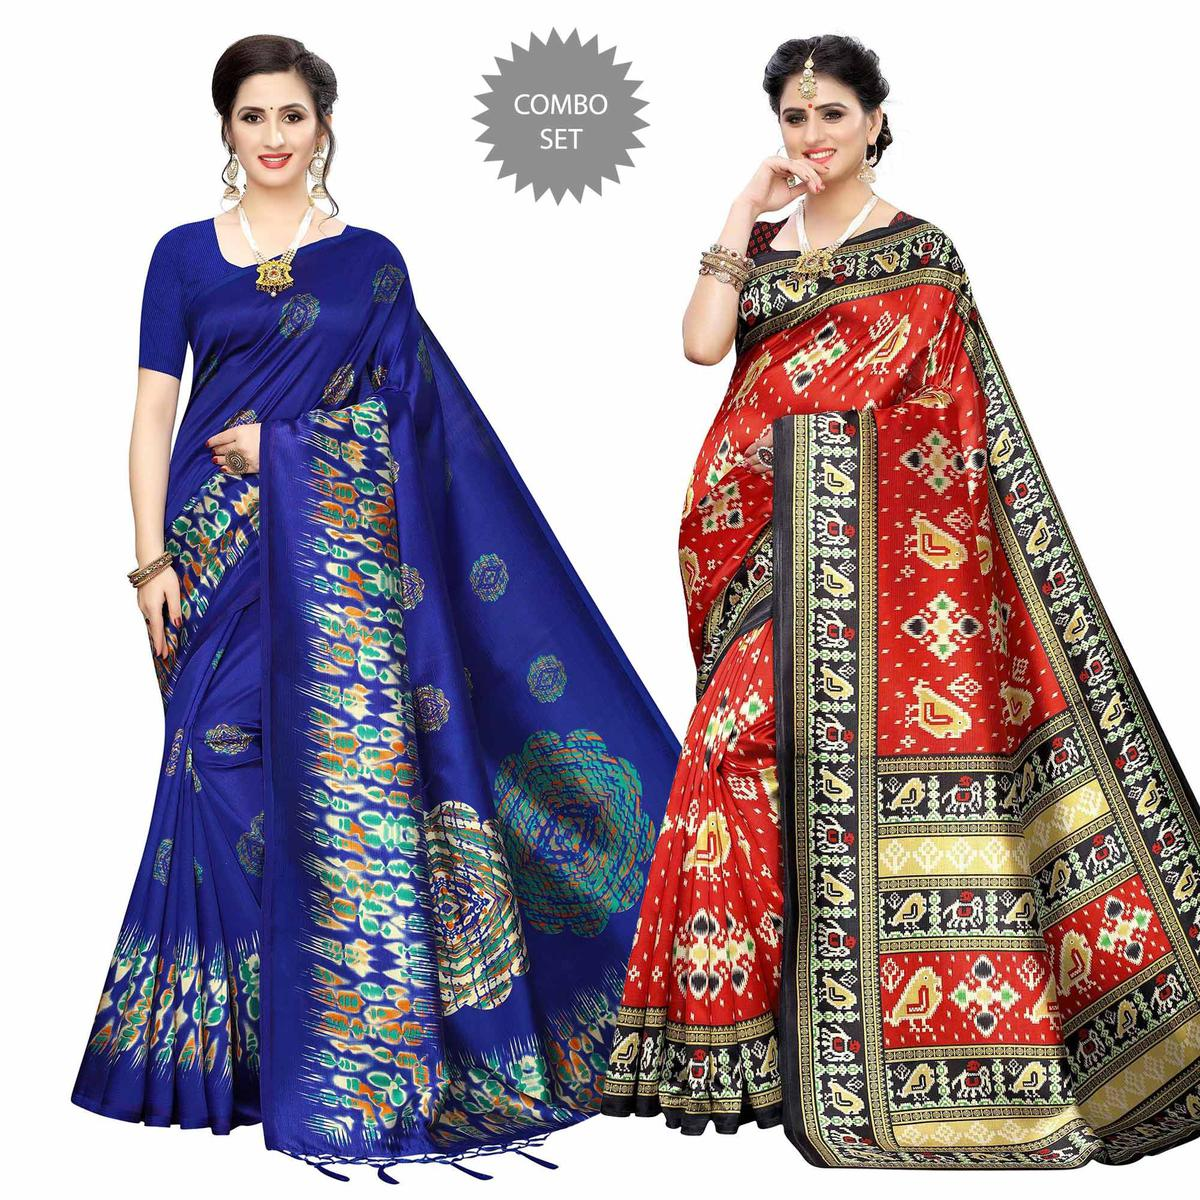 Engrossing Printed Art Silk Saree - Pack of 2